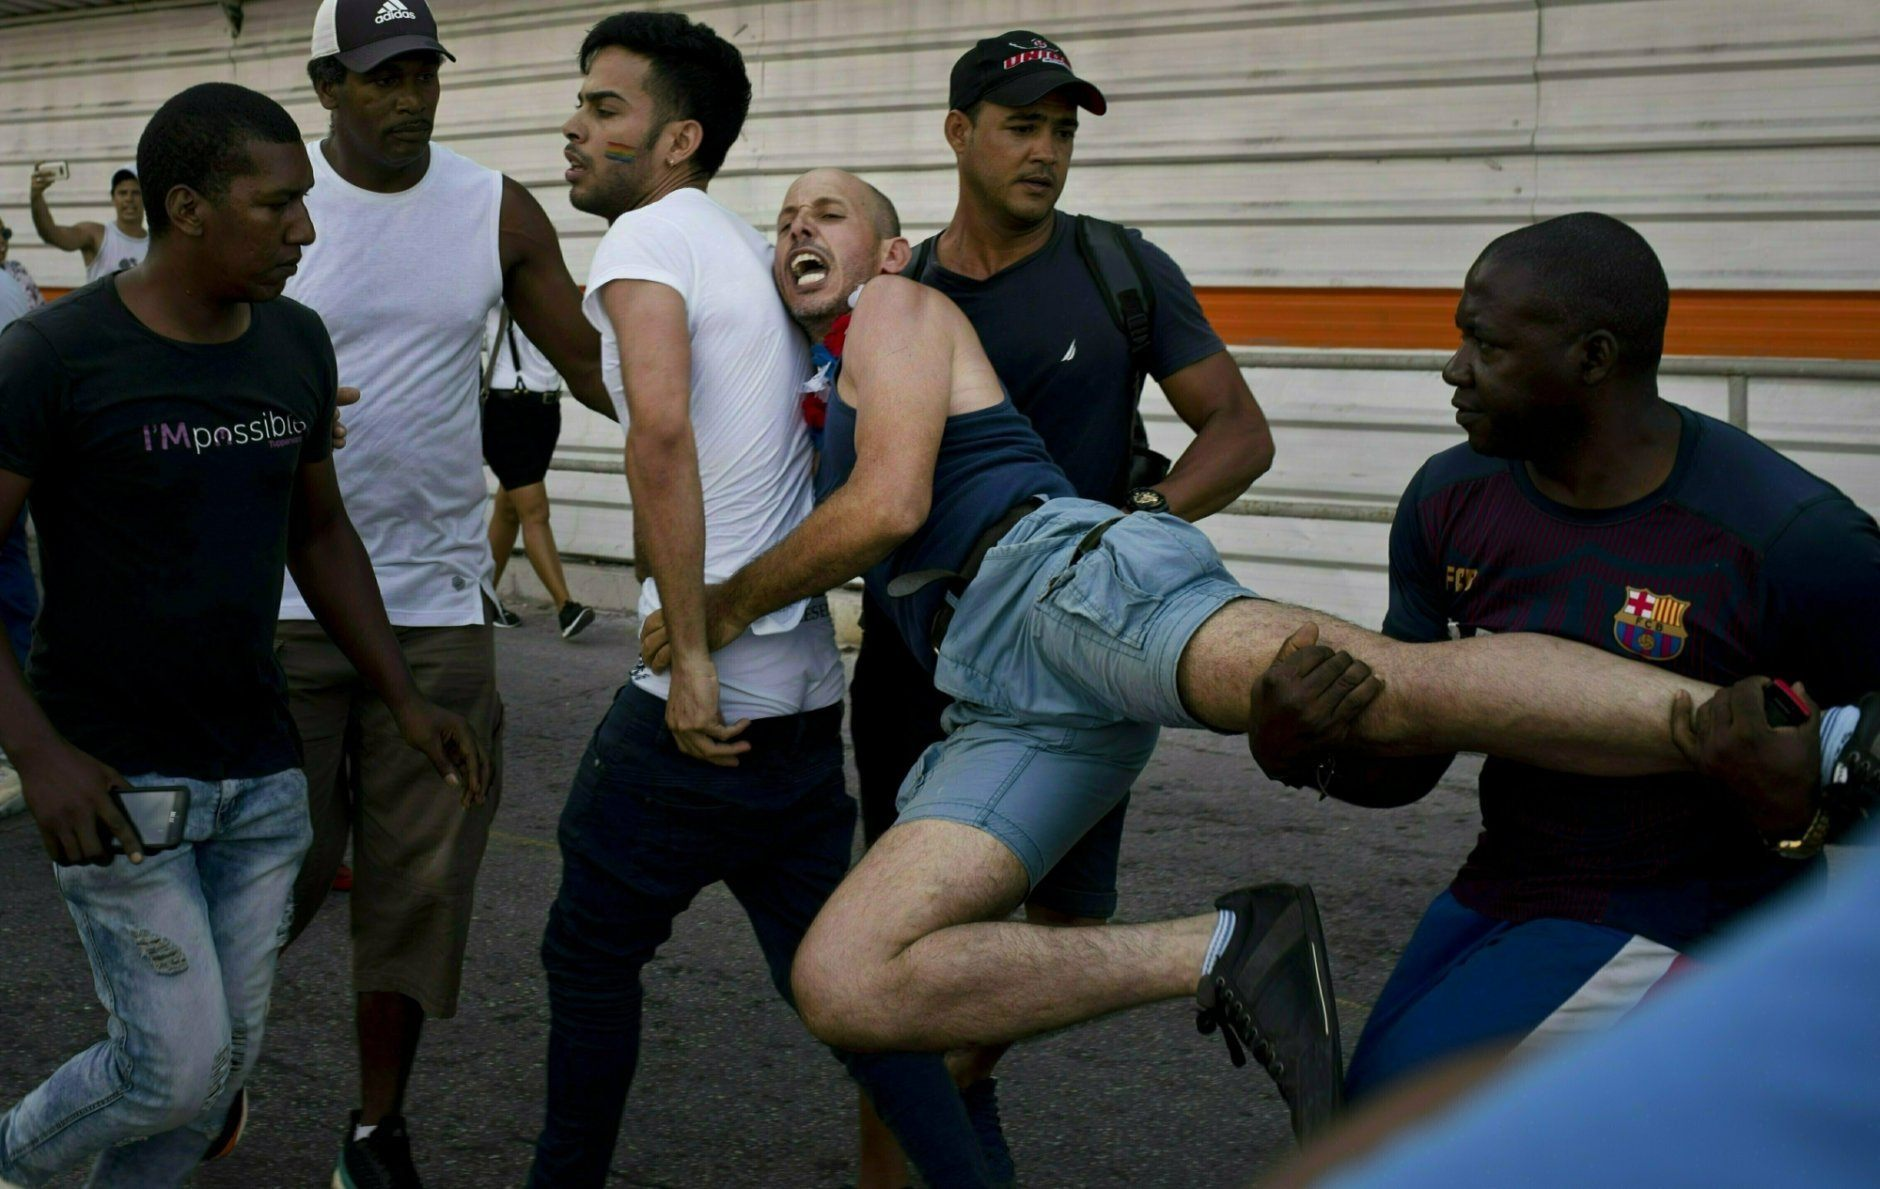 Police detain a gay rights activist taking part in an unauthorized march in Havana, Cuba, Saturday, May 11, 2019. The march was organized using Cuba's new mobile internet, with activists and supporters calling for a rally over Facebook and WhatsApp after the government-run gay rights organization cancelled a Saturday march. (AP Photo/Ramon Espinosa)